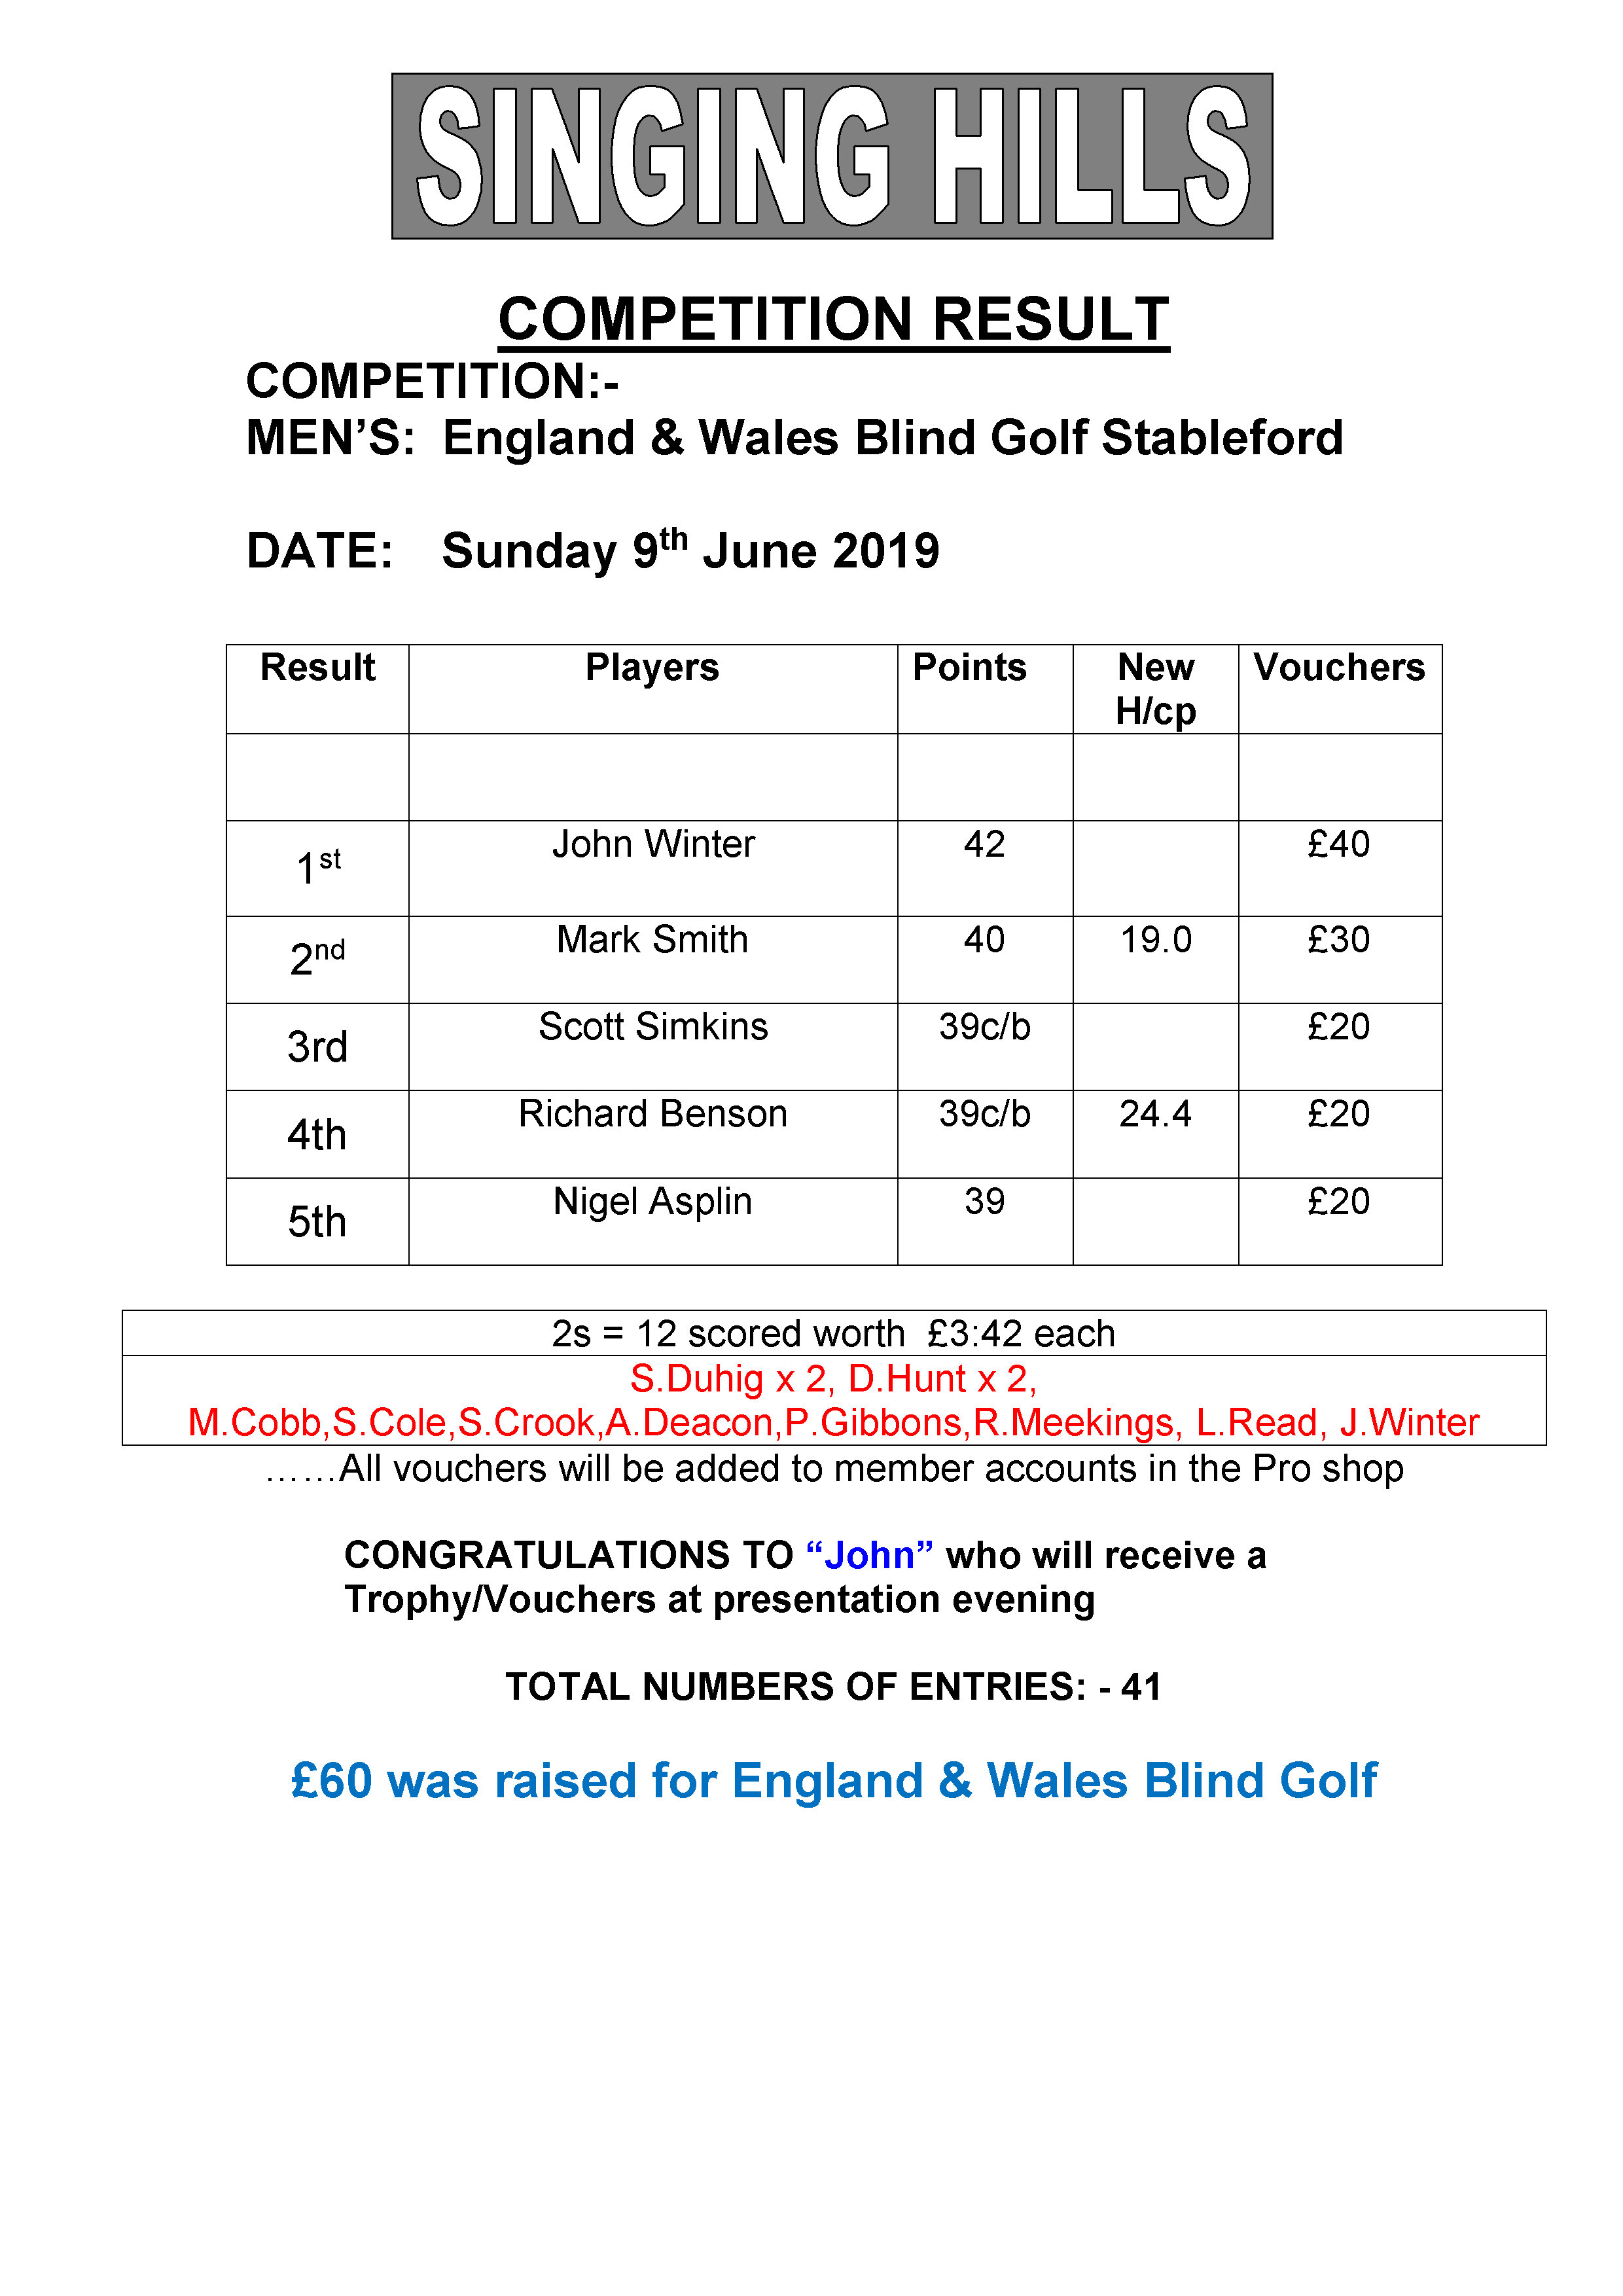 Mens EWBG stableford 2019 result